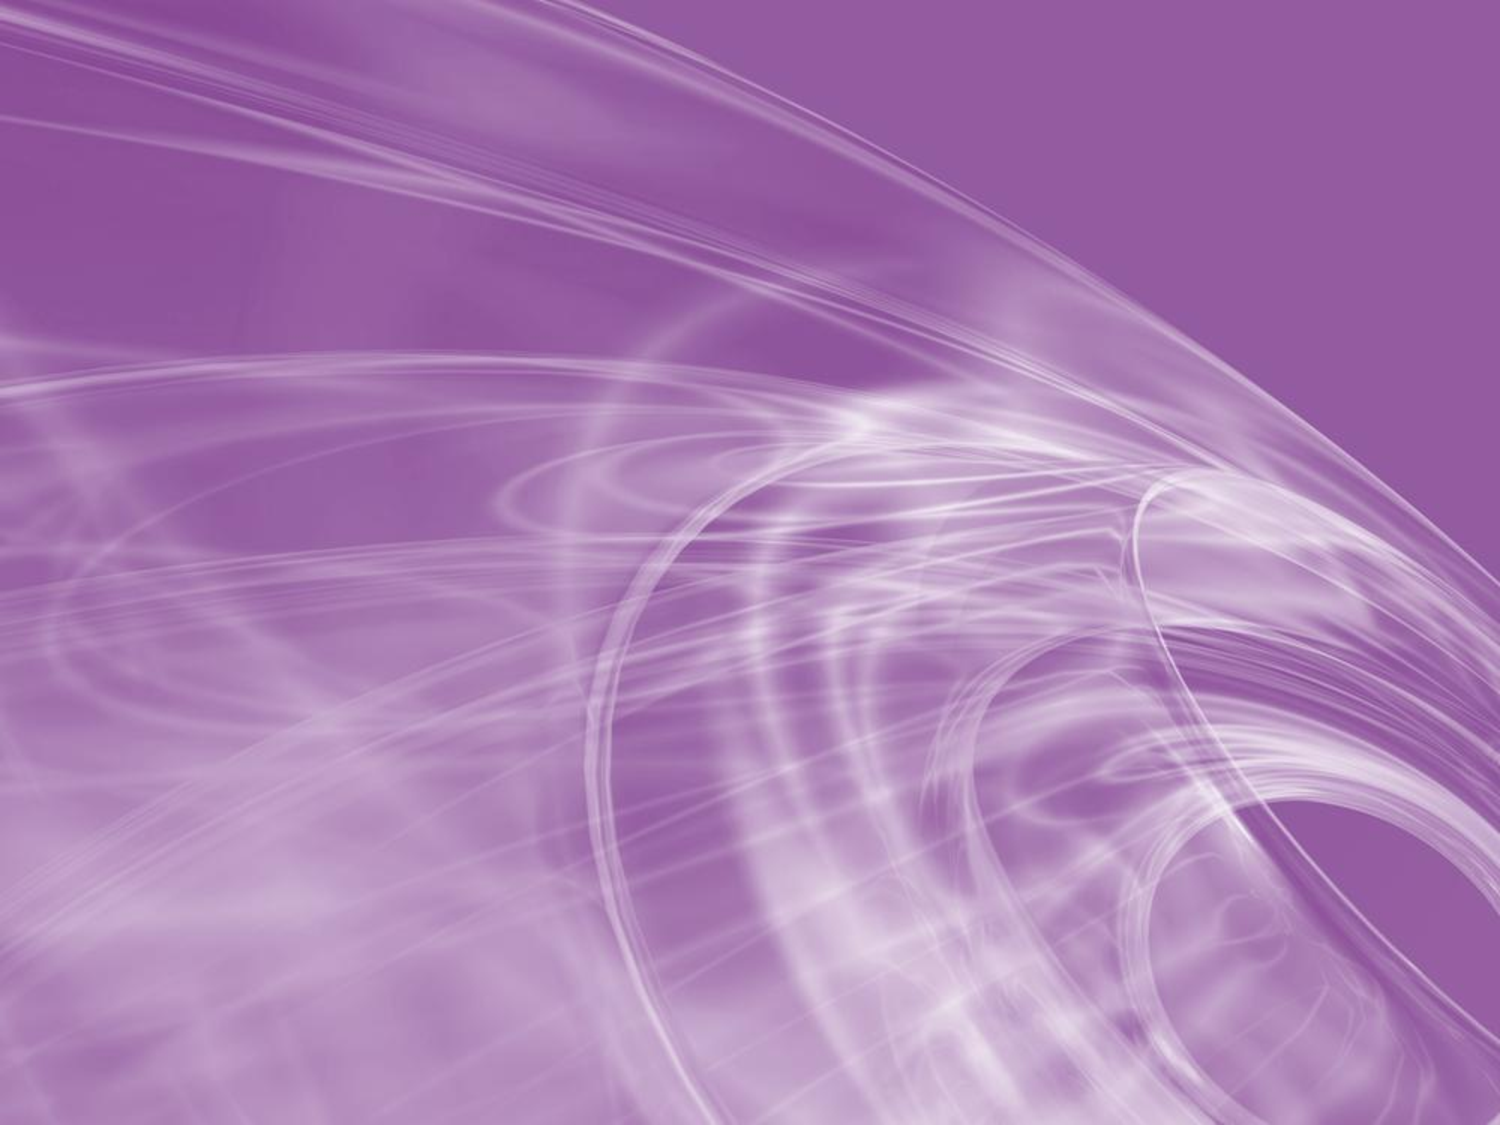 purple ppt backgrounds page 7 of 8 free ppt grounds and templates